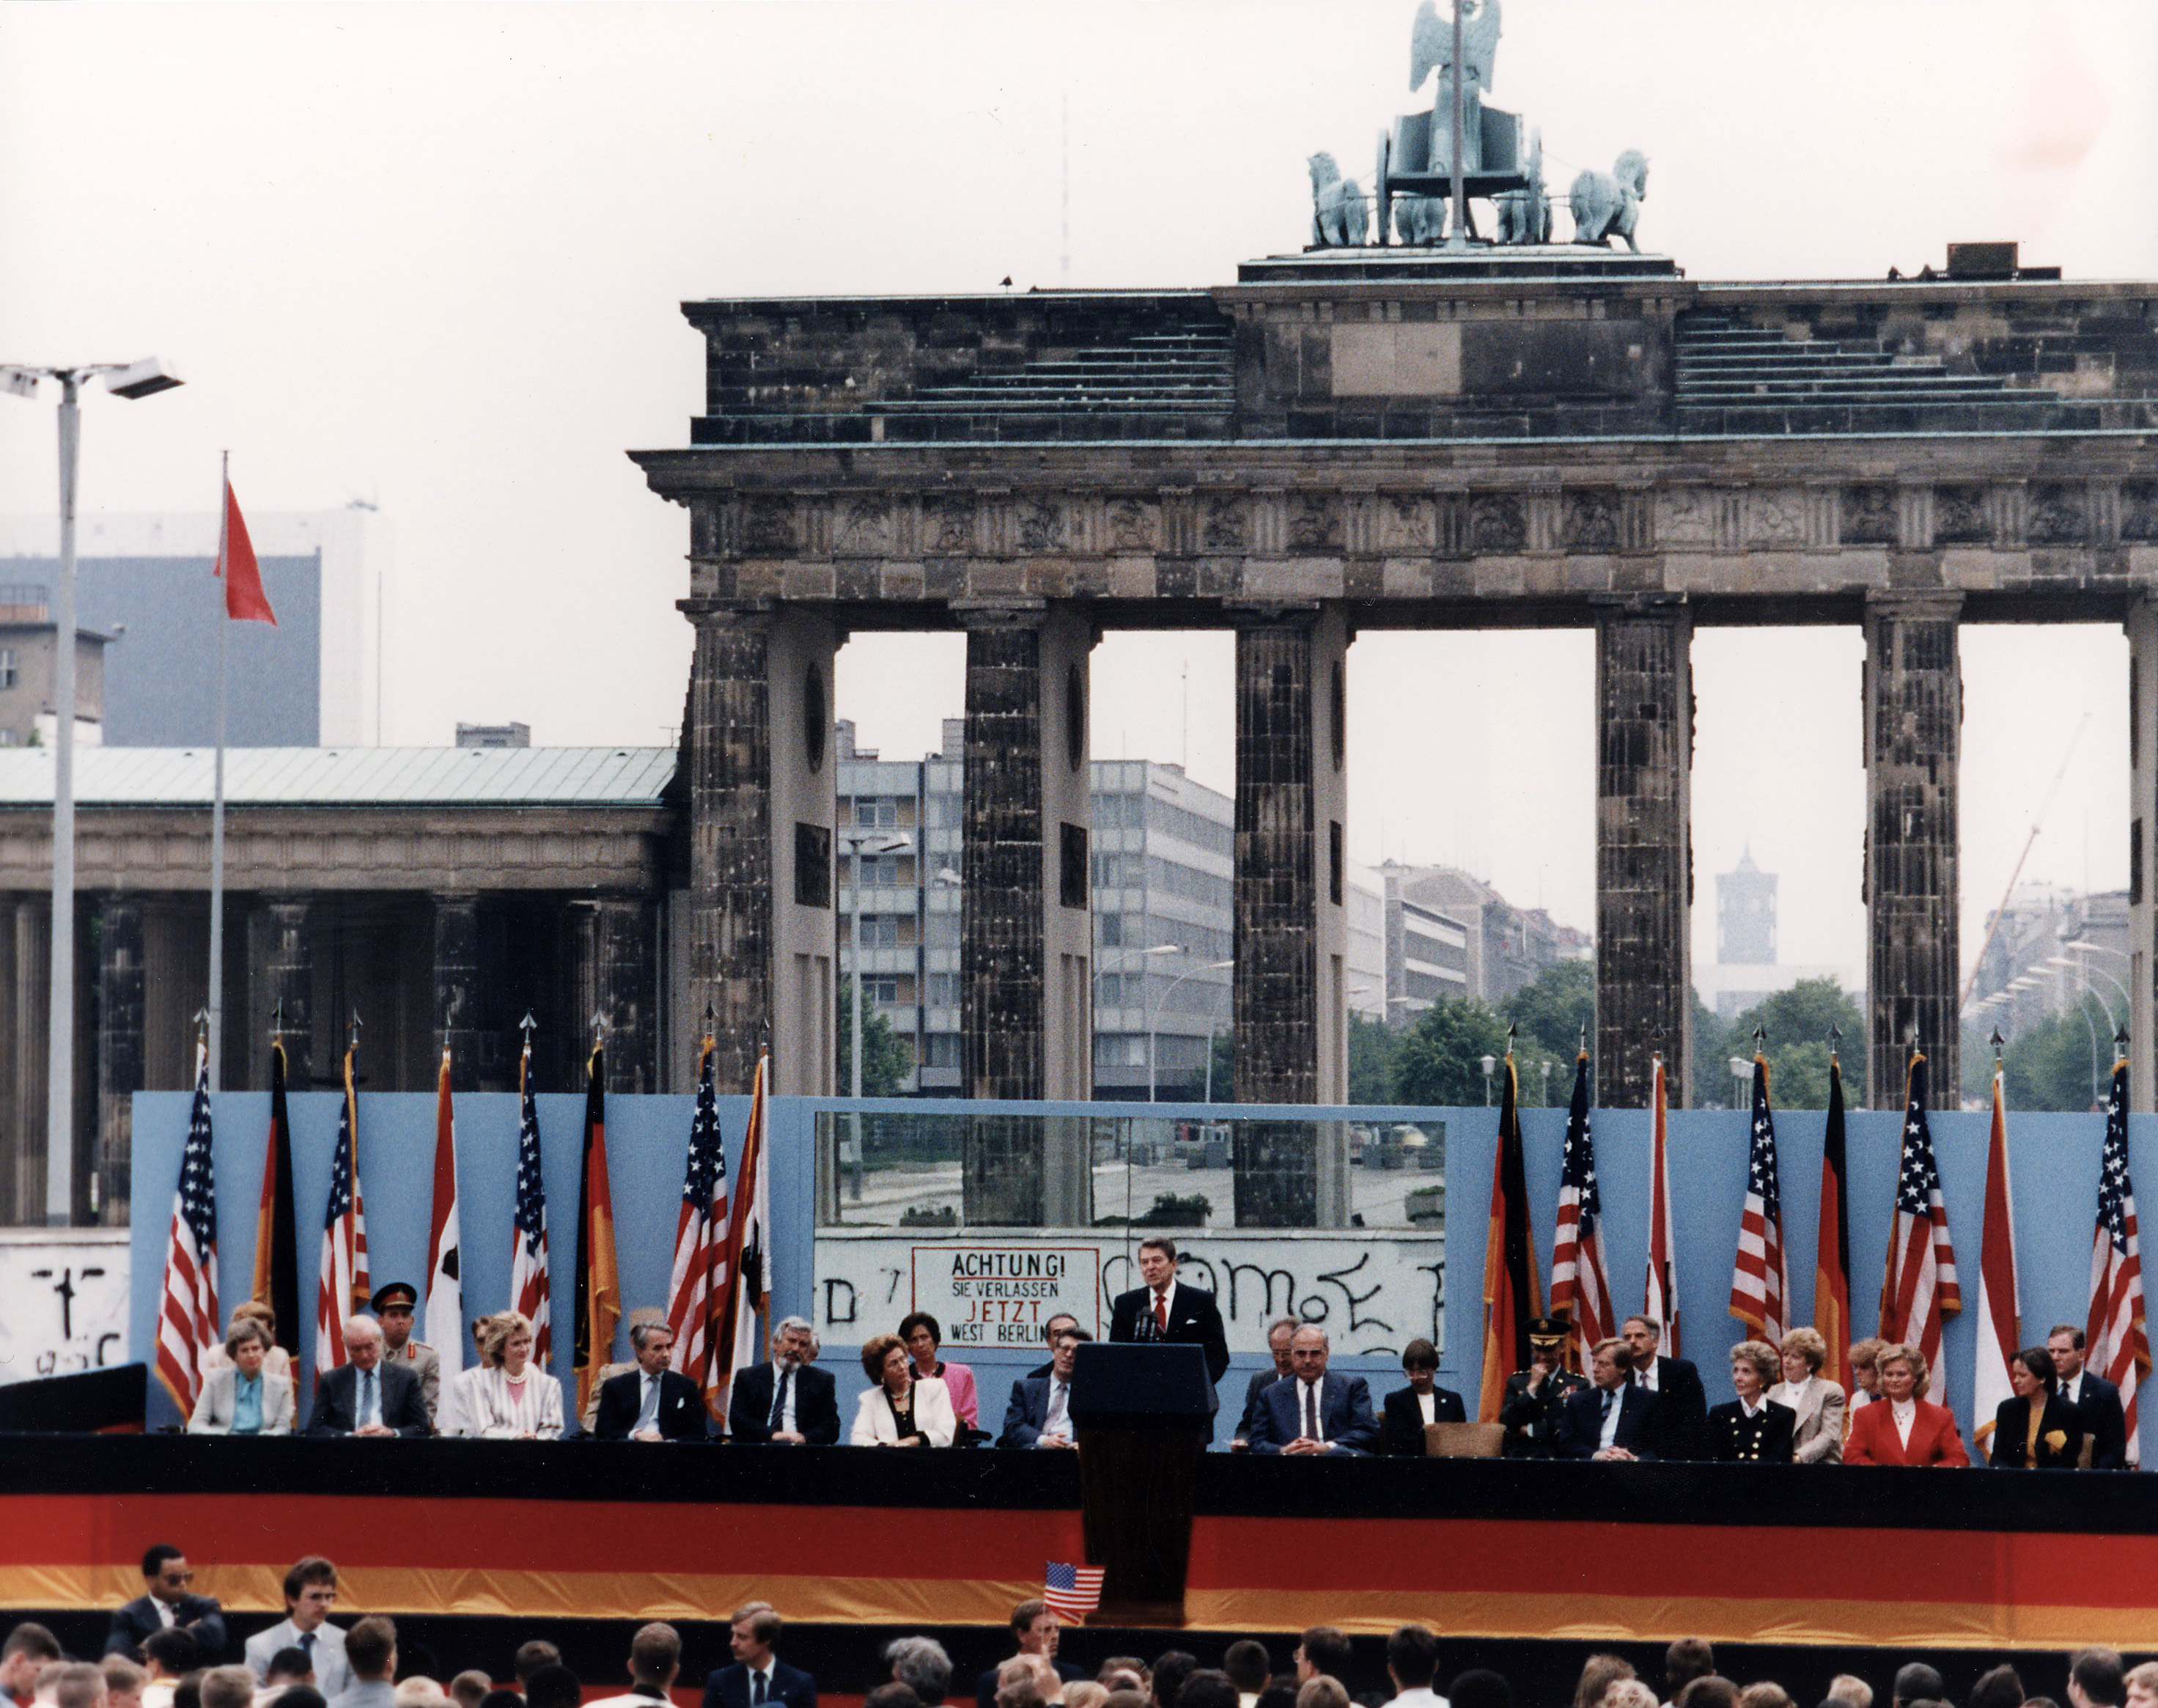 https://upload.wikimedia.org/wikipedia/commons/9/90/Photograph_of_President_Reagan_giving_a_speech_at_the_Berlin_Wall%2C_Brandenburg_Gate%2C_Federal_Republic_of_Germany_-_NARA_-_198585.jpg